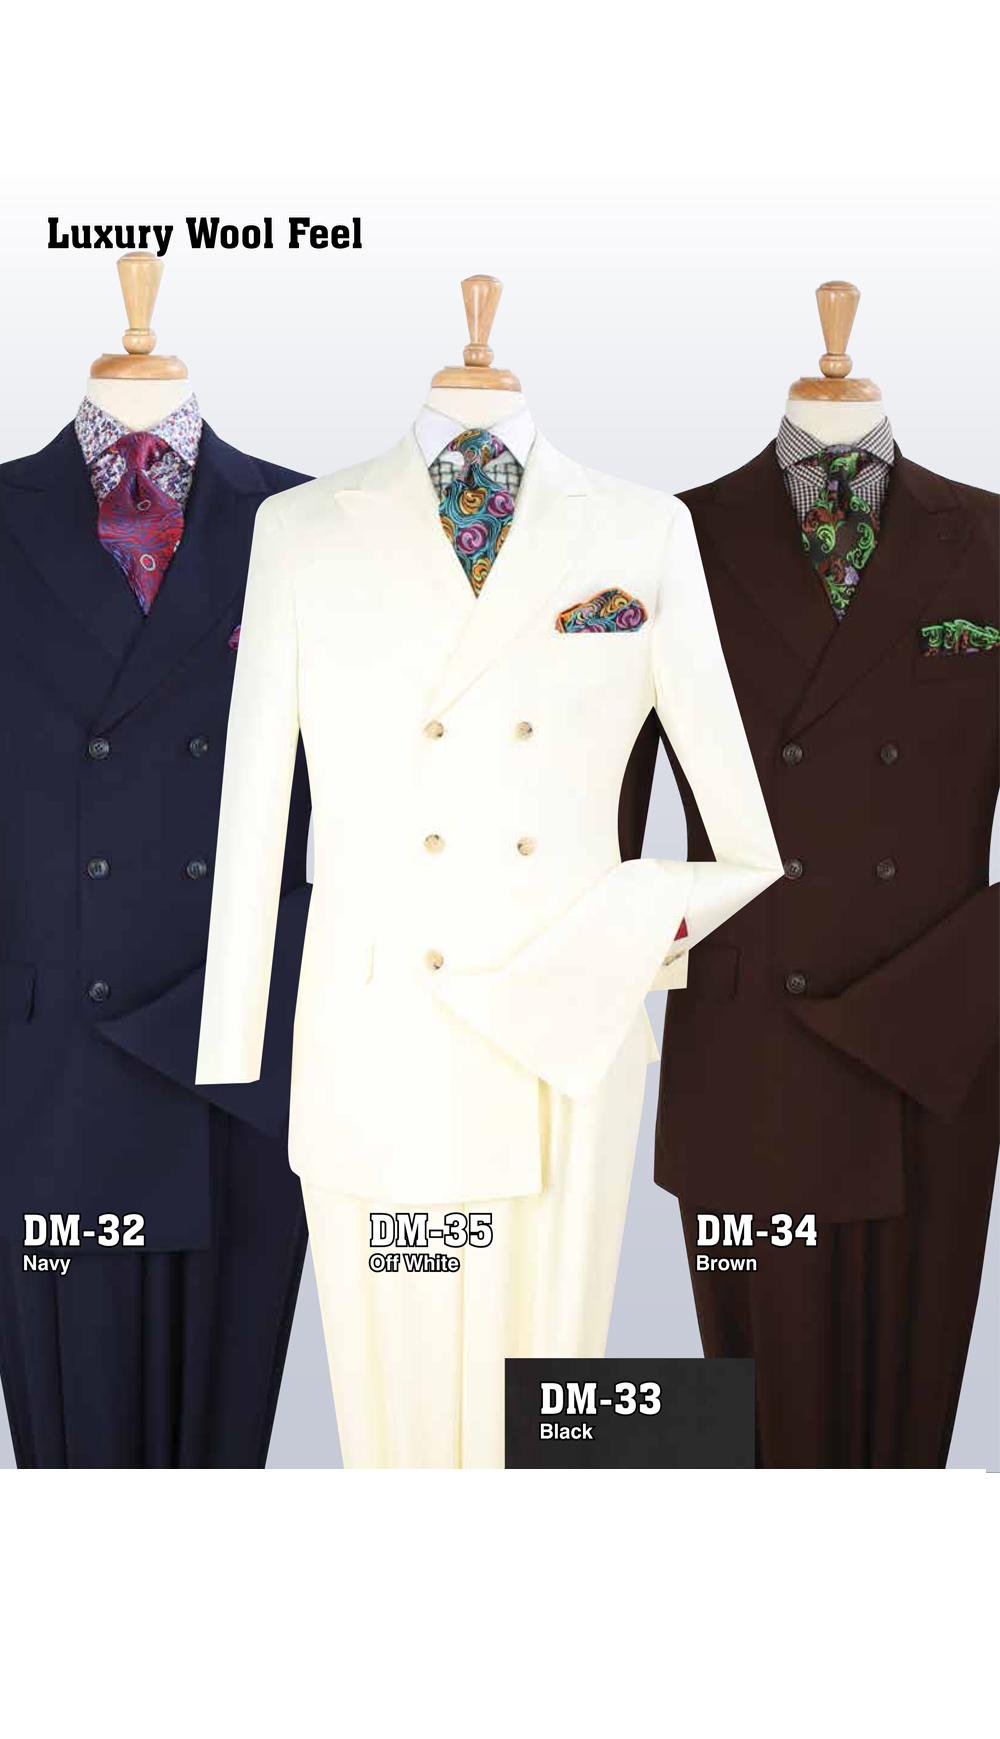 High Fashion Men Suits DM-32